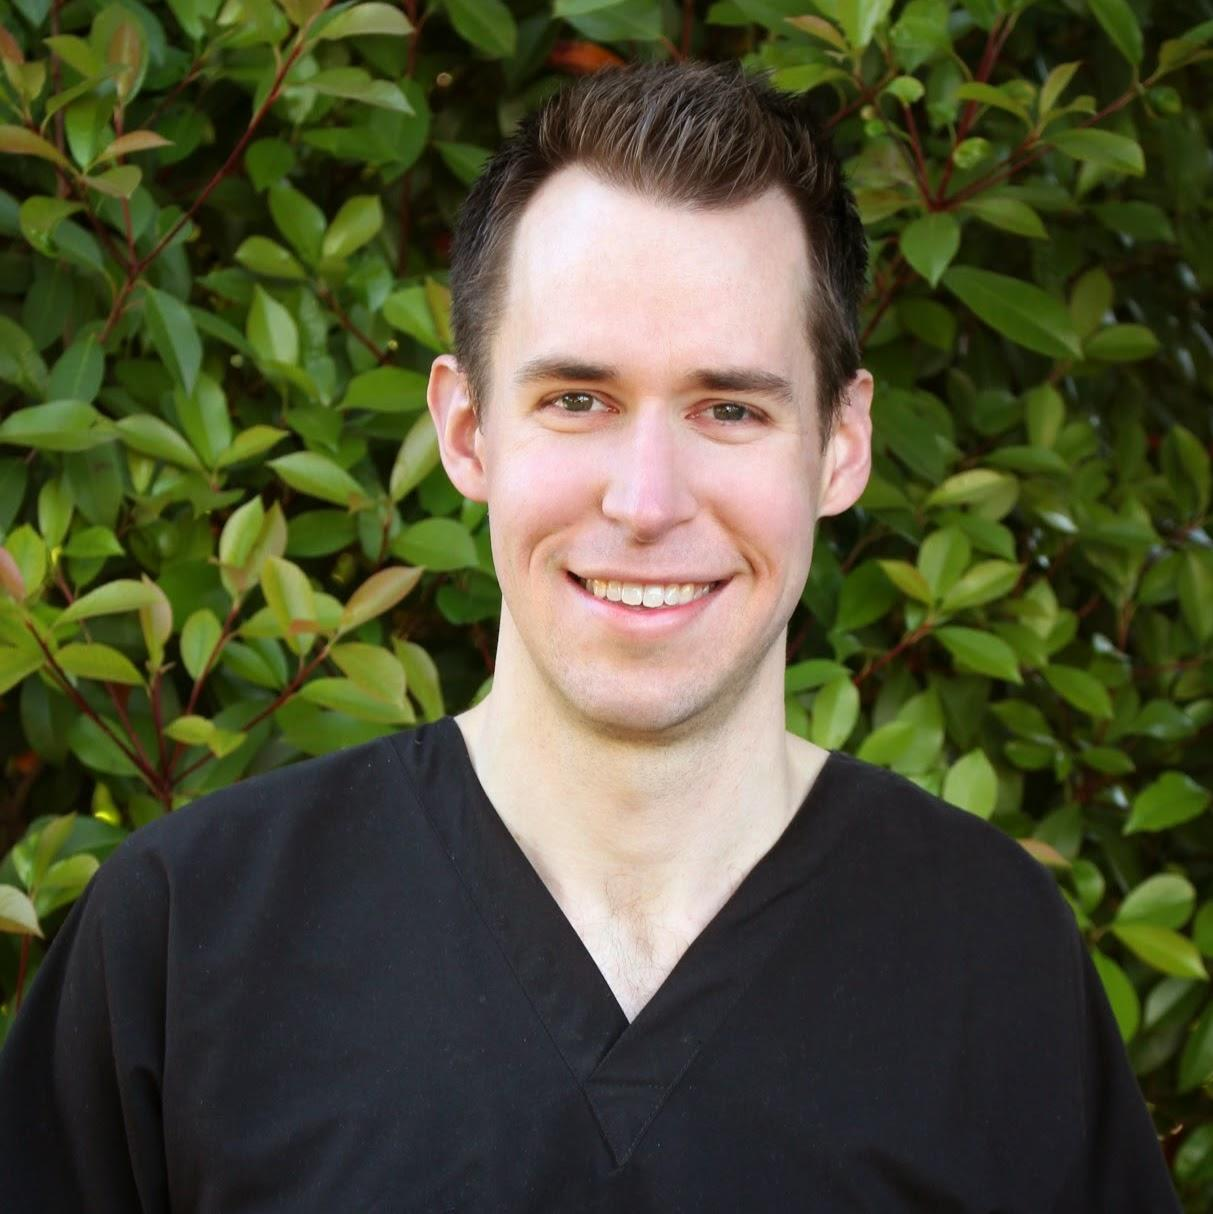 Anthony Dillard, DDS Family & Cosmetic Dentistry image 1